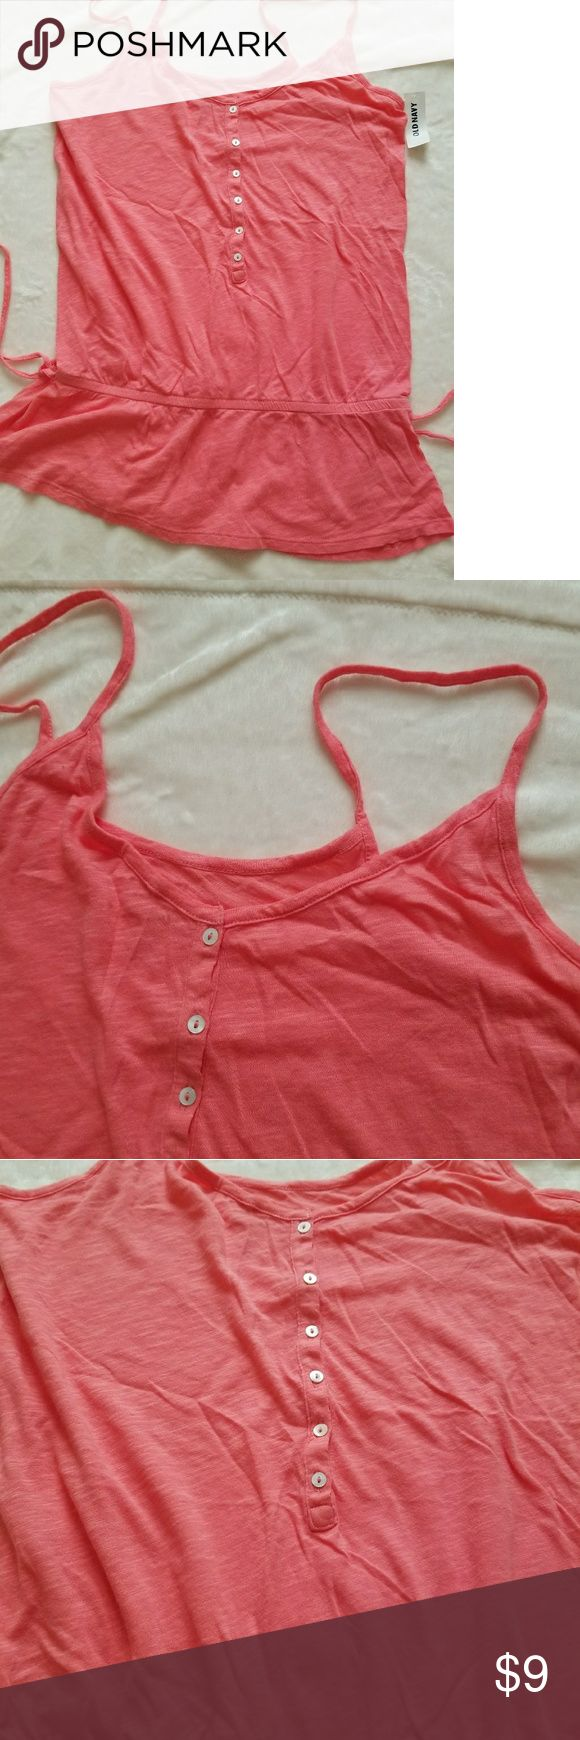 Old Navy Drawstring Cami This pretty pink cami is great for layering, looks great with shorts, 60%Cotton, 40%Modal blend, straps are NOT adjustable. Fabric is soft and sheer, perfect for hot summery months. Drawstring cannot be pulled to cinch but can be tied into a bow. Old Navy Tops Camisoles